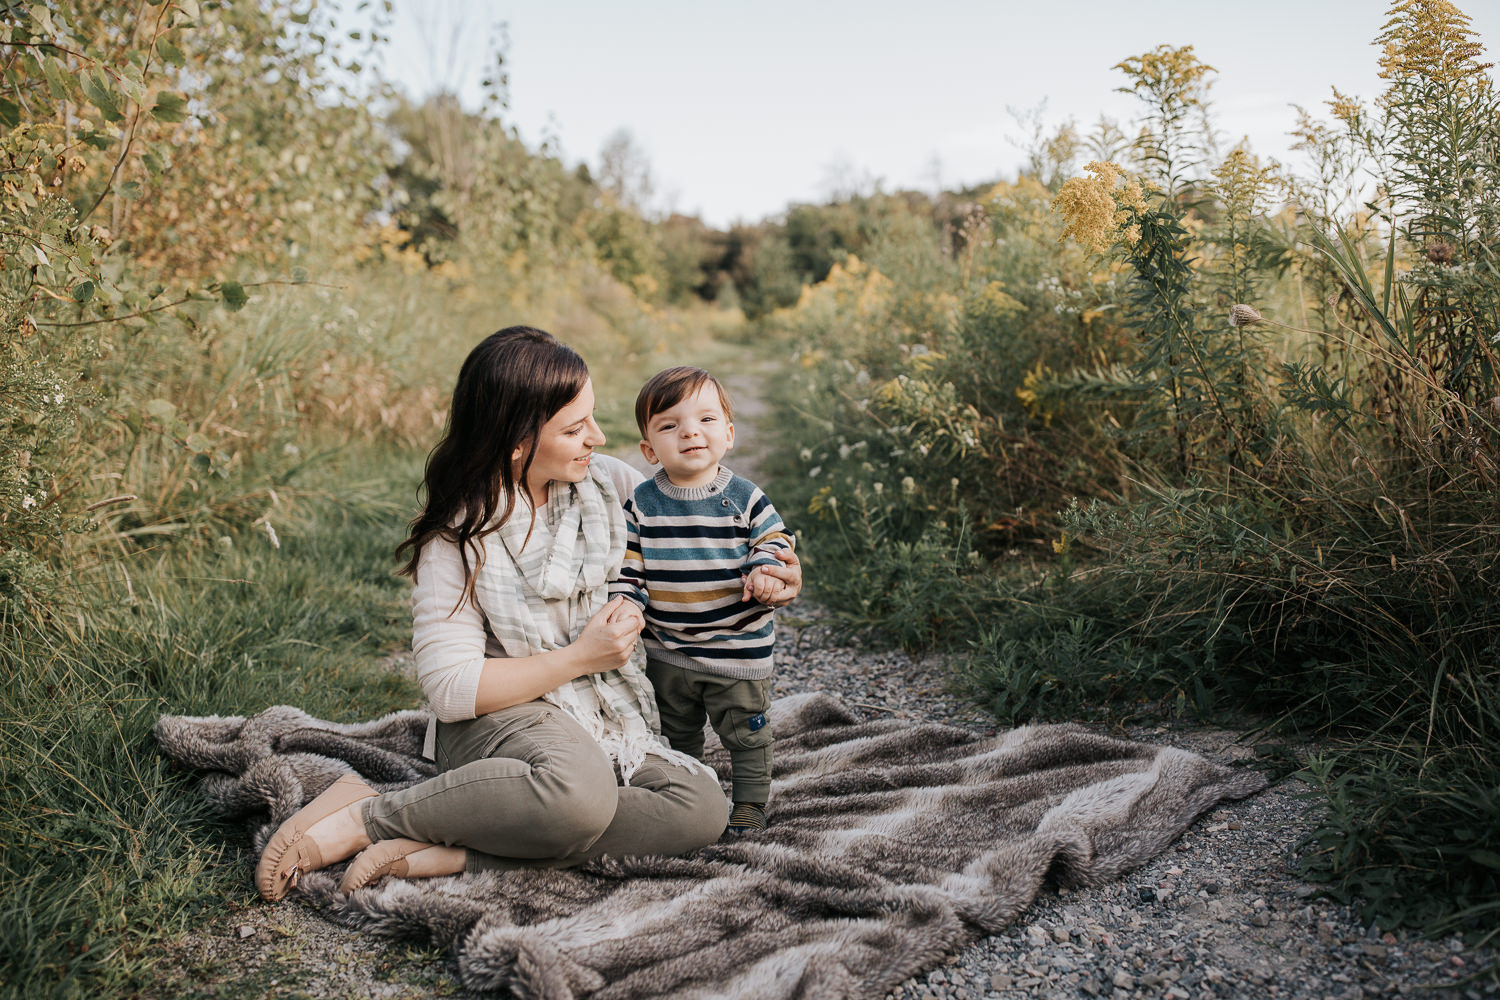 mother sitting on fur blanket on outdoor grassy path, 1 year old baby boy standing next to her, mom smiling at son, boy smiling at camera - Barrie Golden Hour Photography